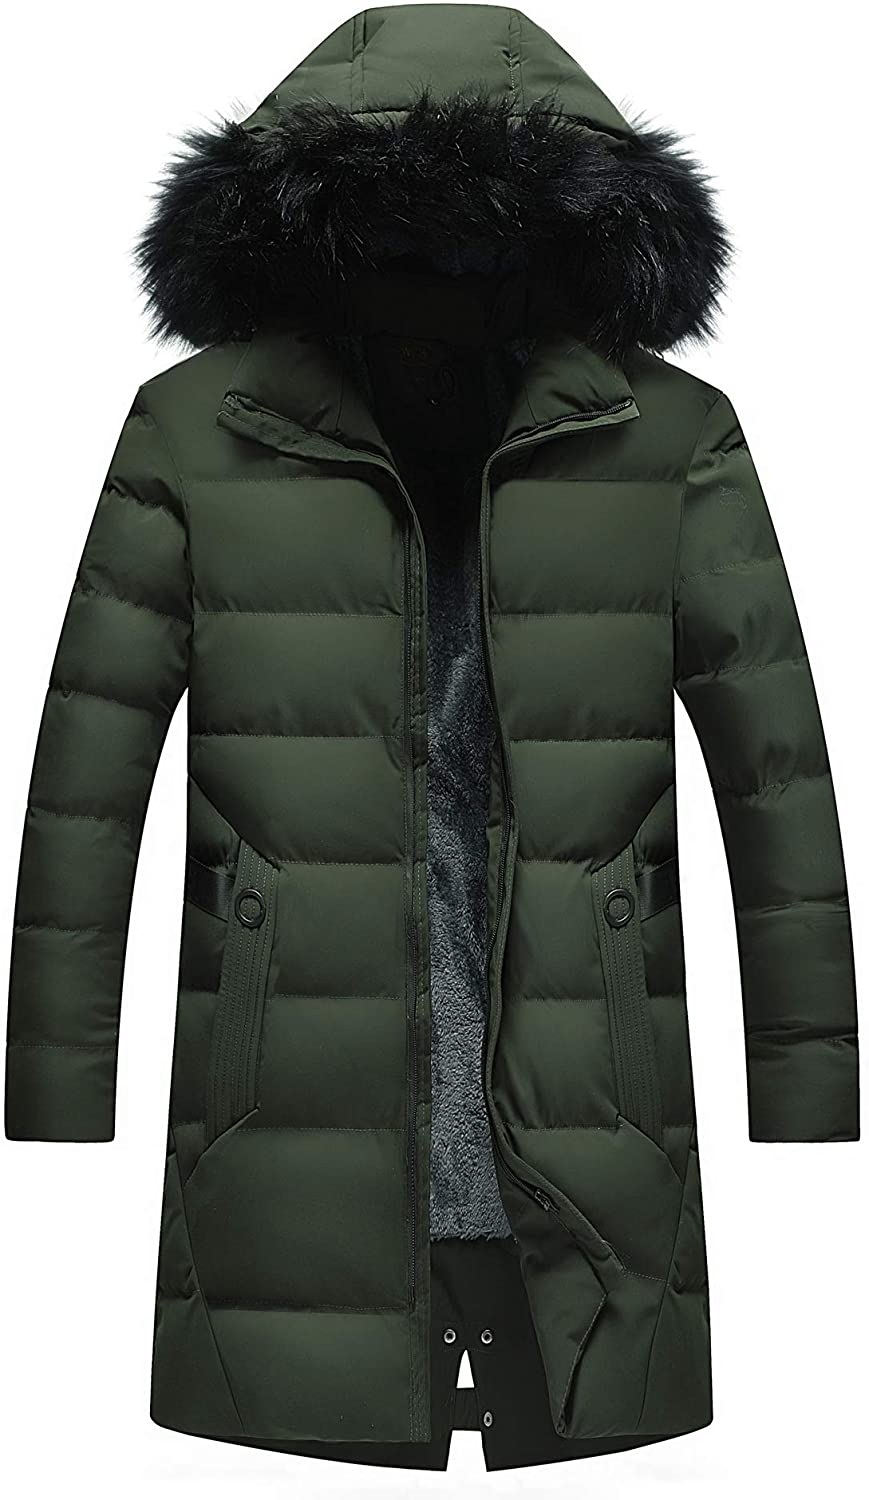 XICHENGSHIDAI Mens Long Padded Jacket Cotton Parka Coat with Faux Fur Trimmed Hood